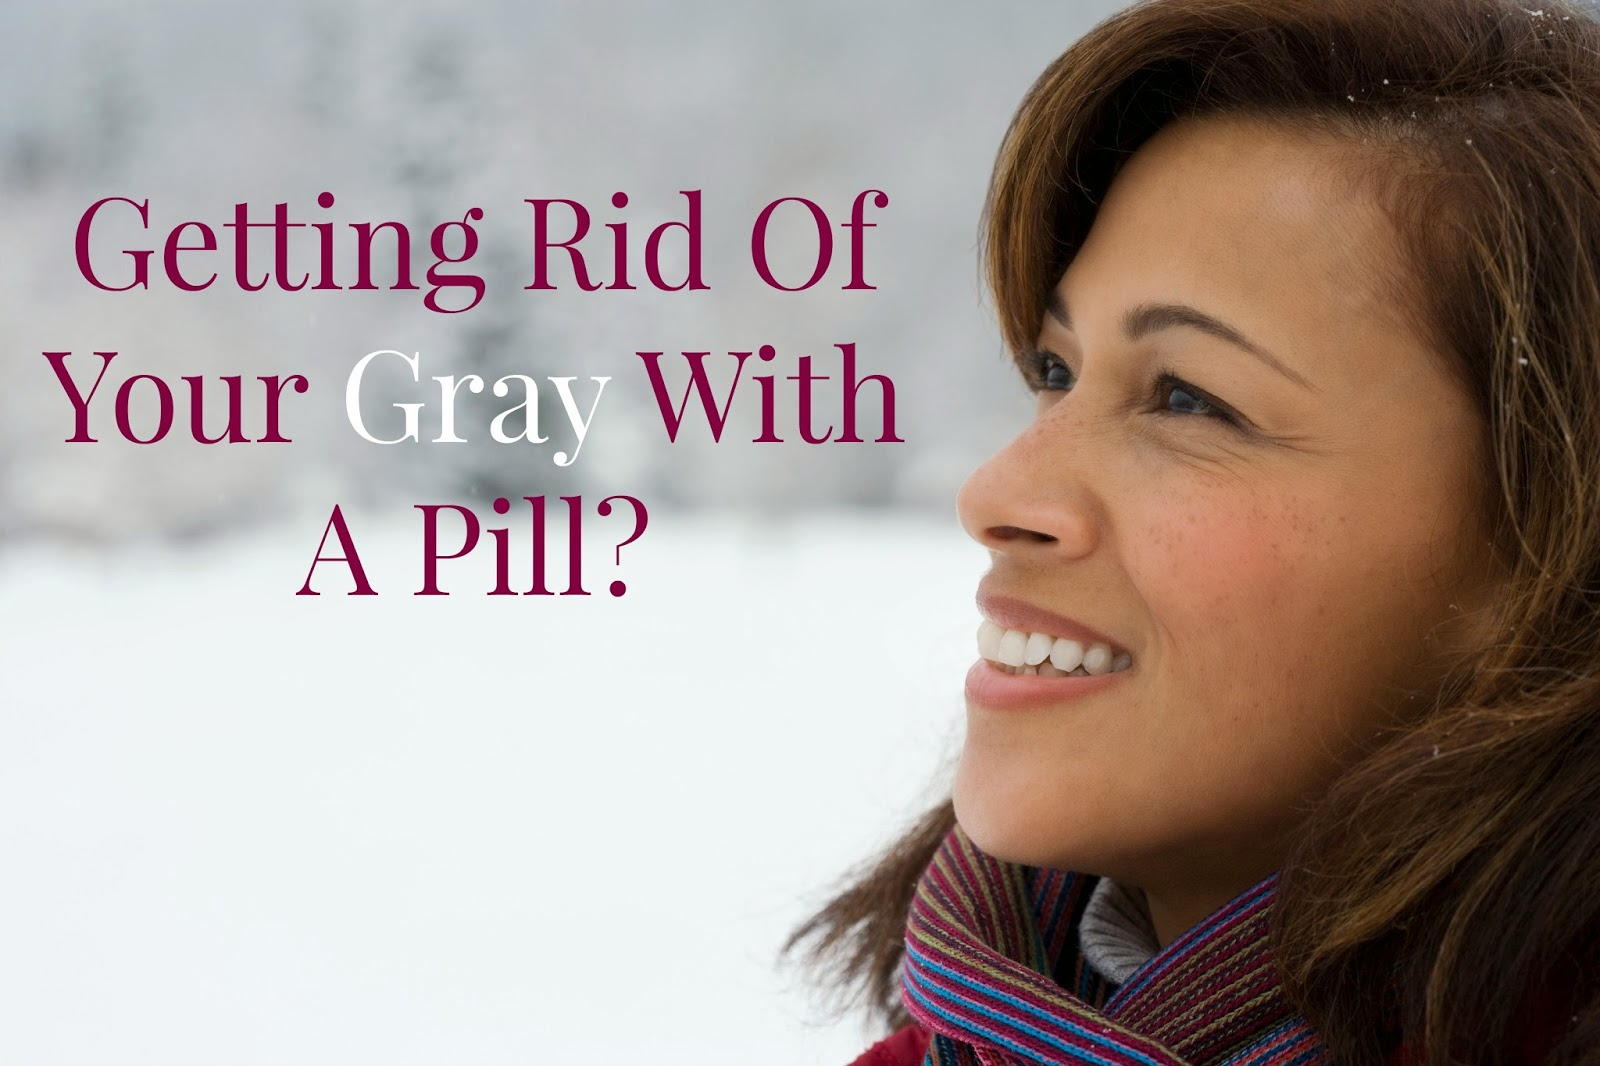 Want to get rid of gray hair the easy way? There is a pill lusing catalase enzyme to do just that. We checked it out and here's what we found.